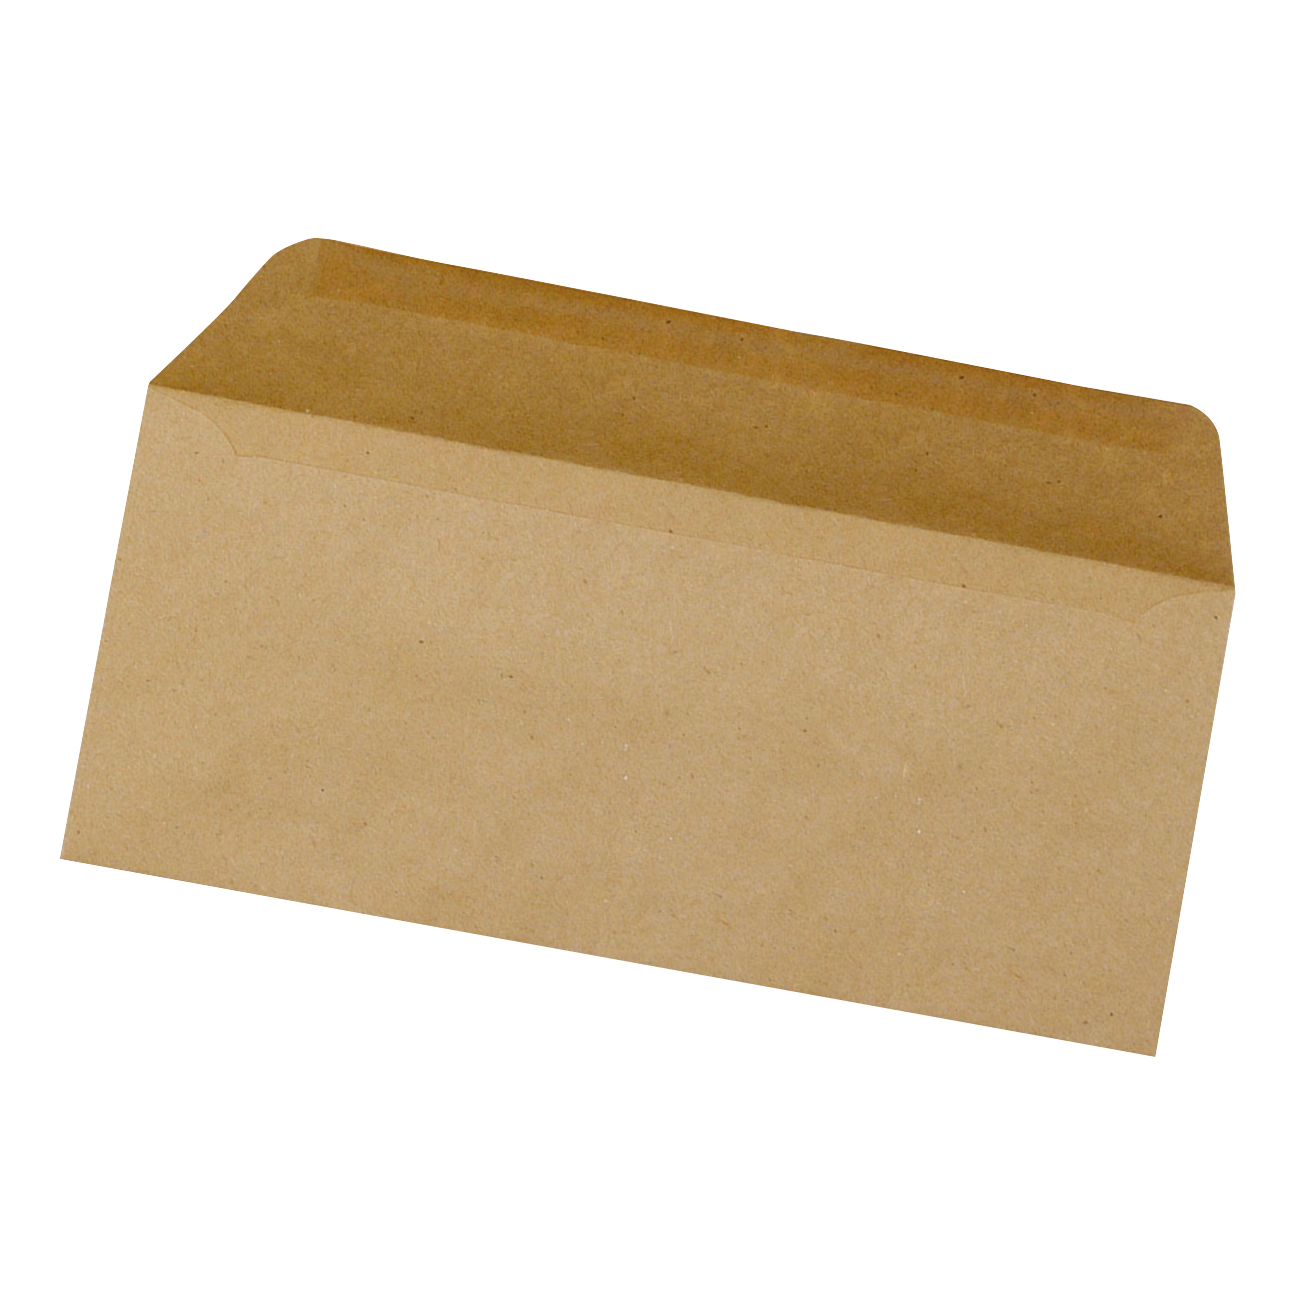 5 Star Office Envelopes DL Recycled Lightweight Wallet Gummed 75gsm Manilla [Pack 1000]